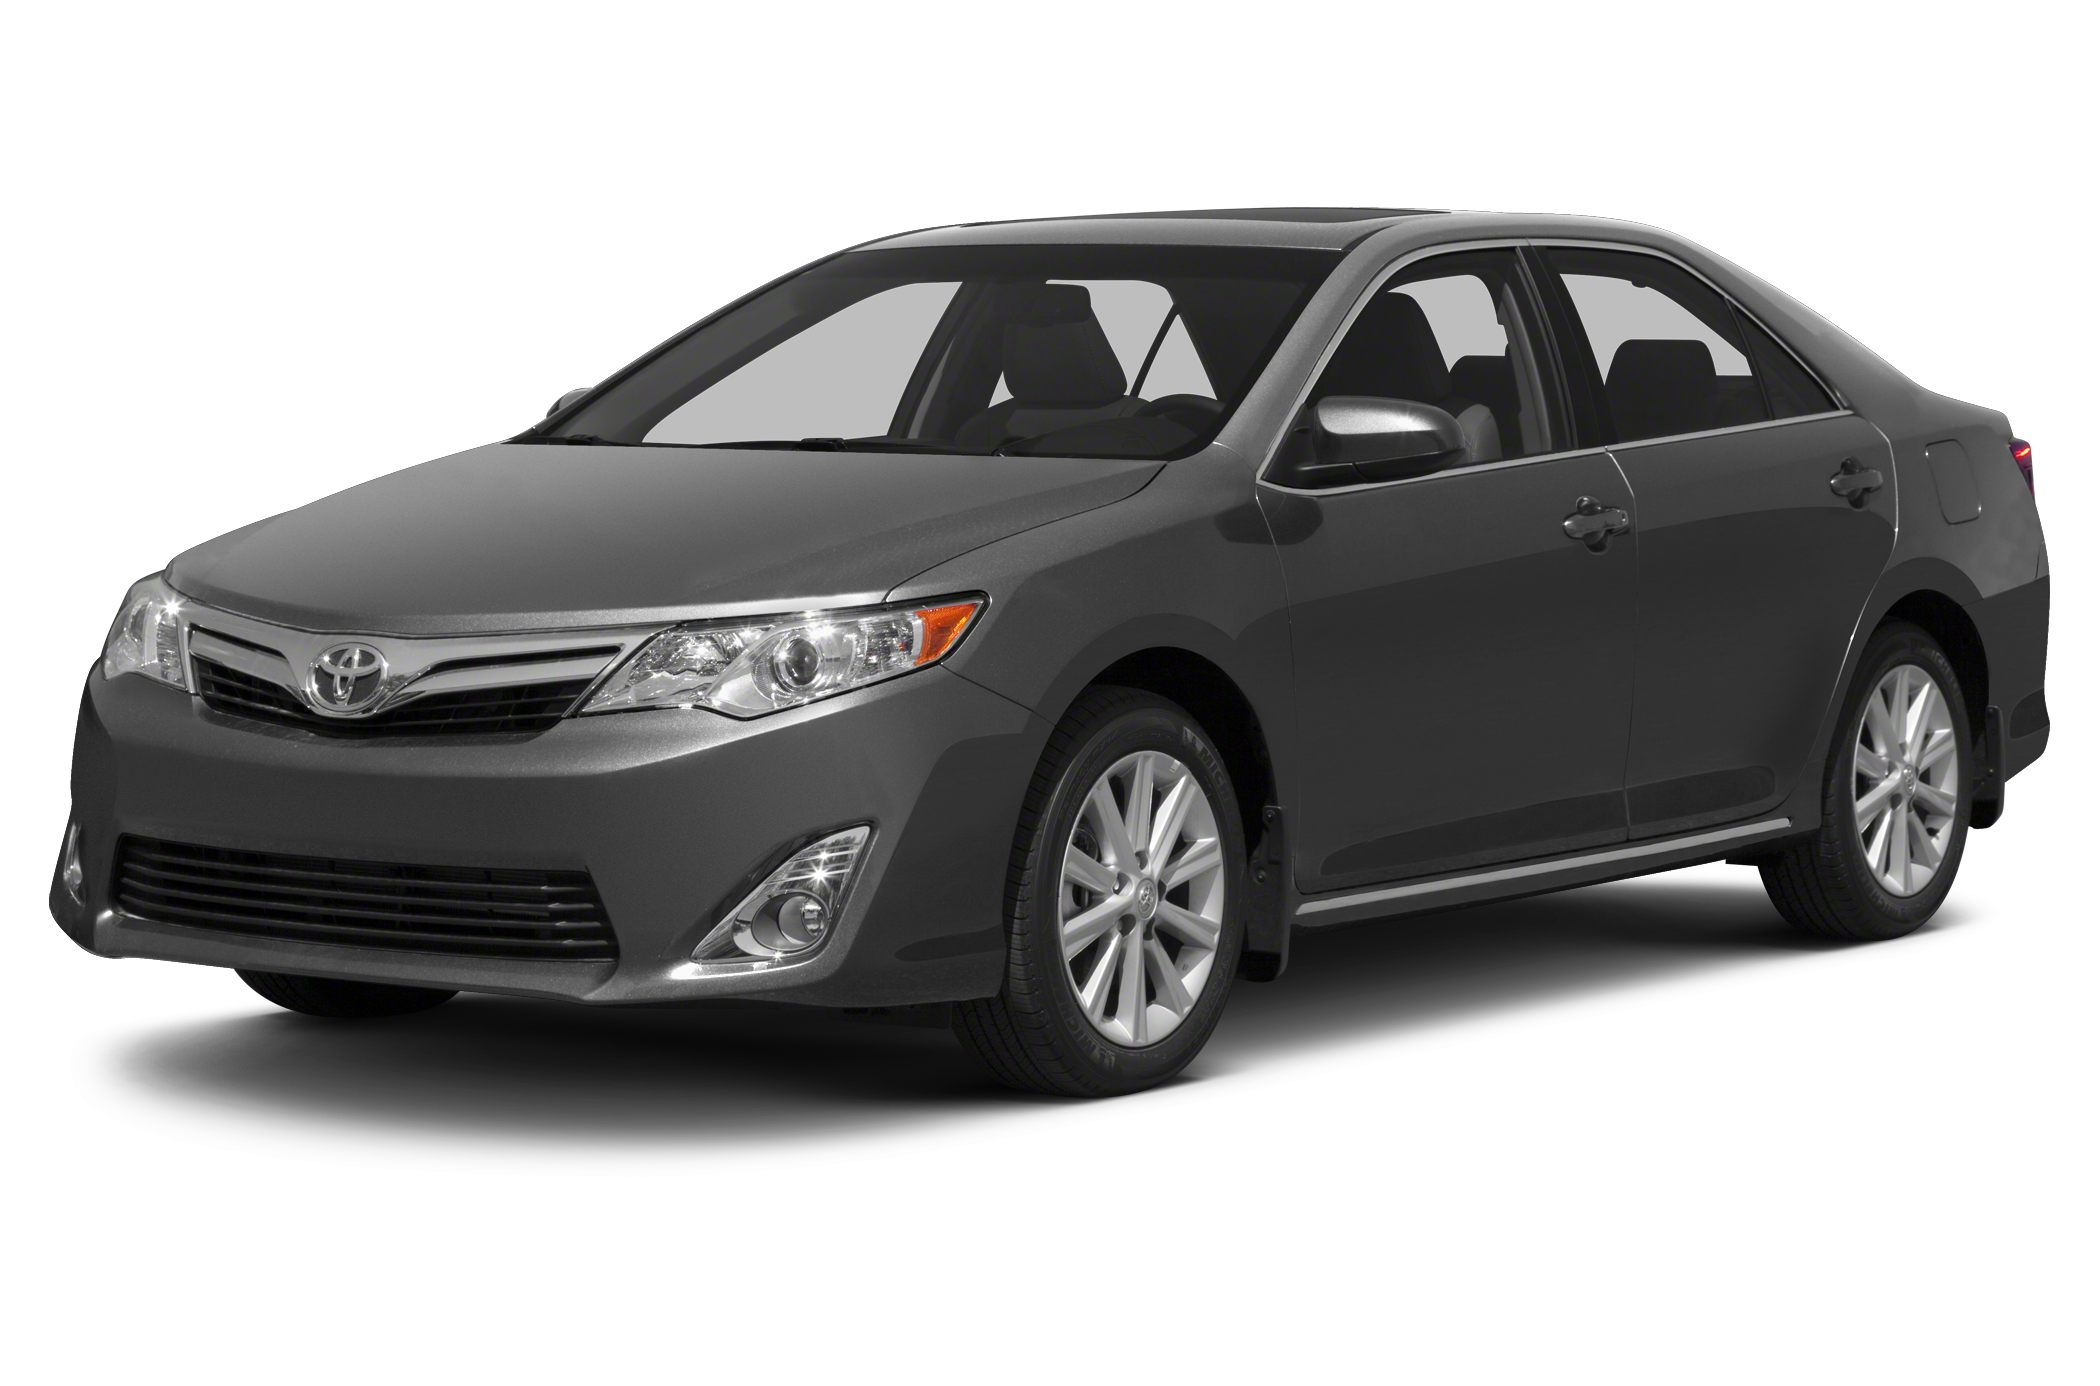 2012 Toyota Camry XLE Sedan for sale in Binghamton for $18,999 with 39,574 miles